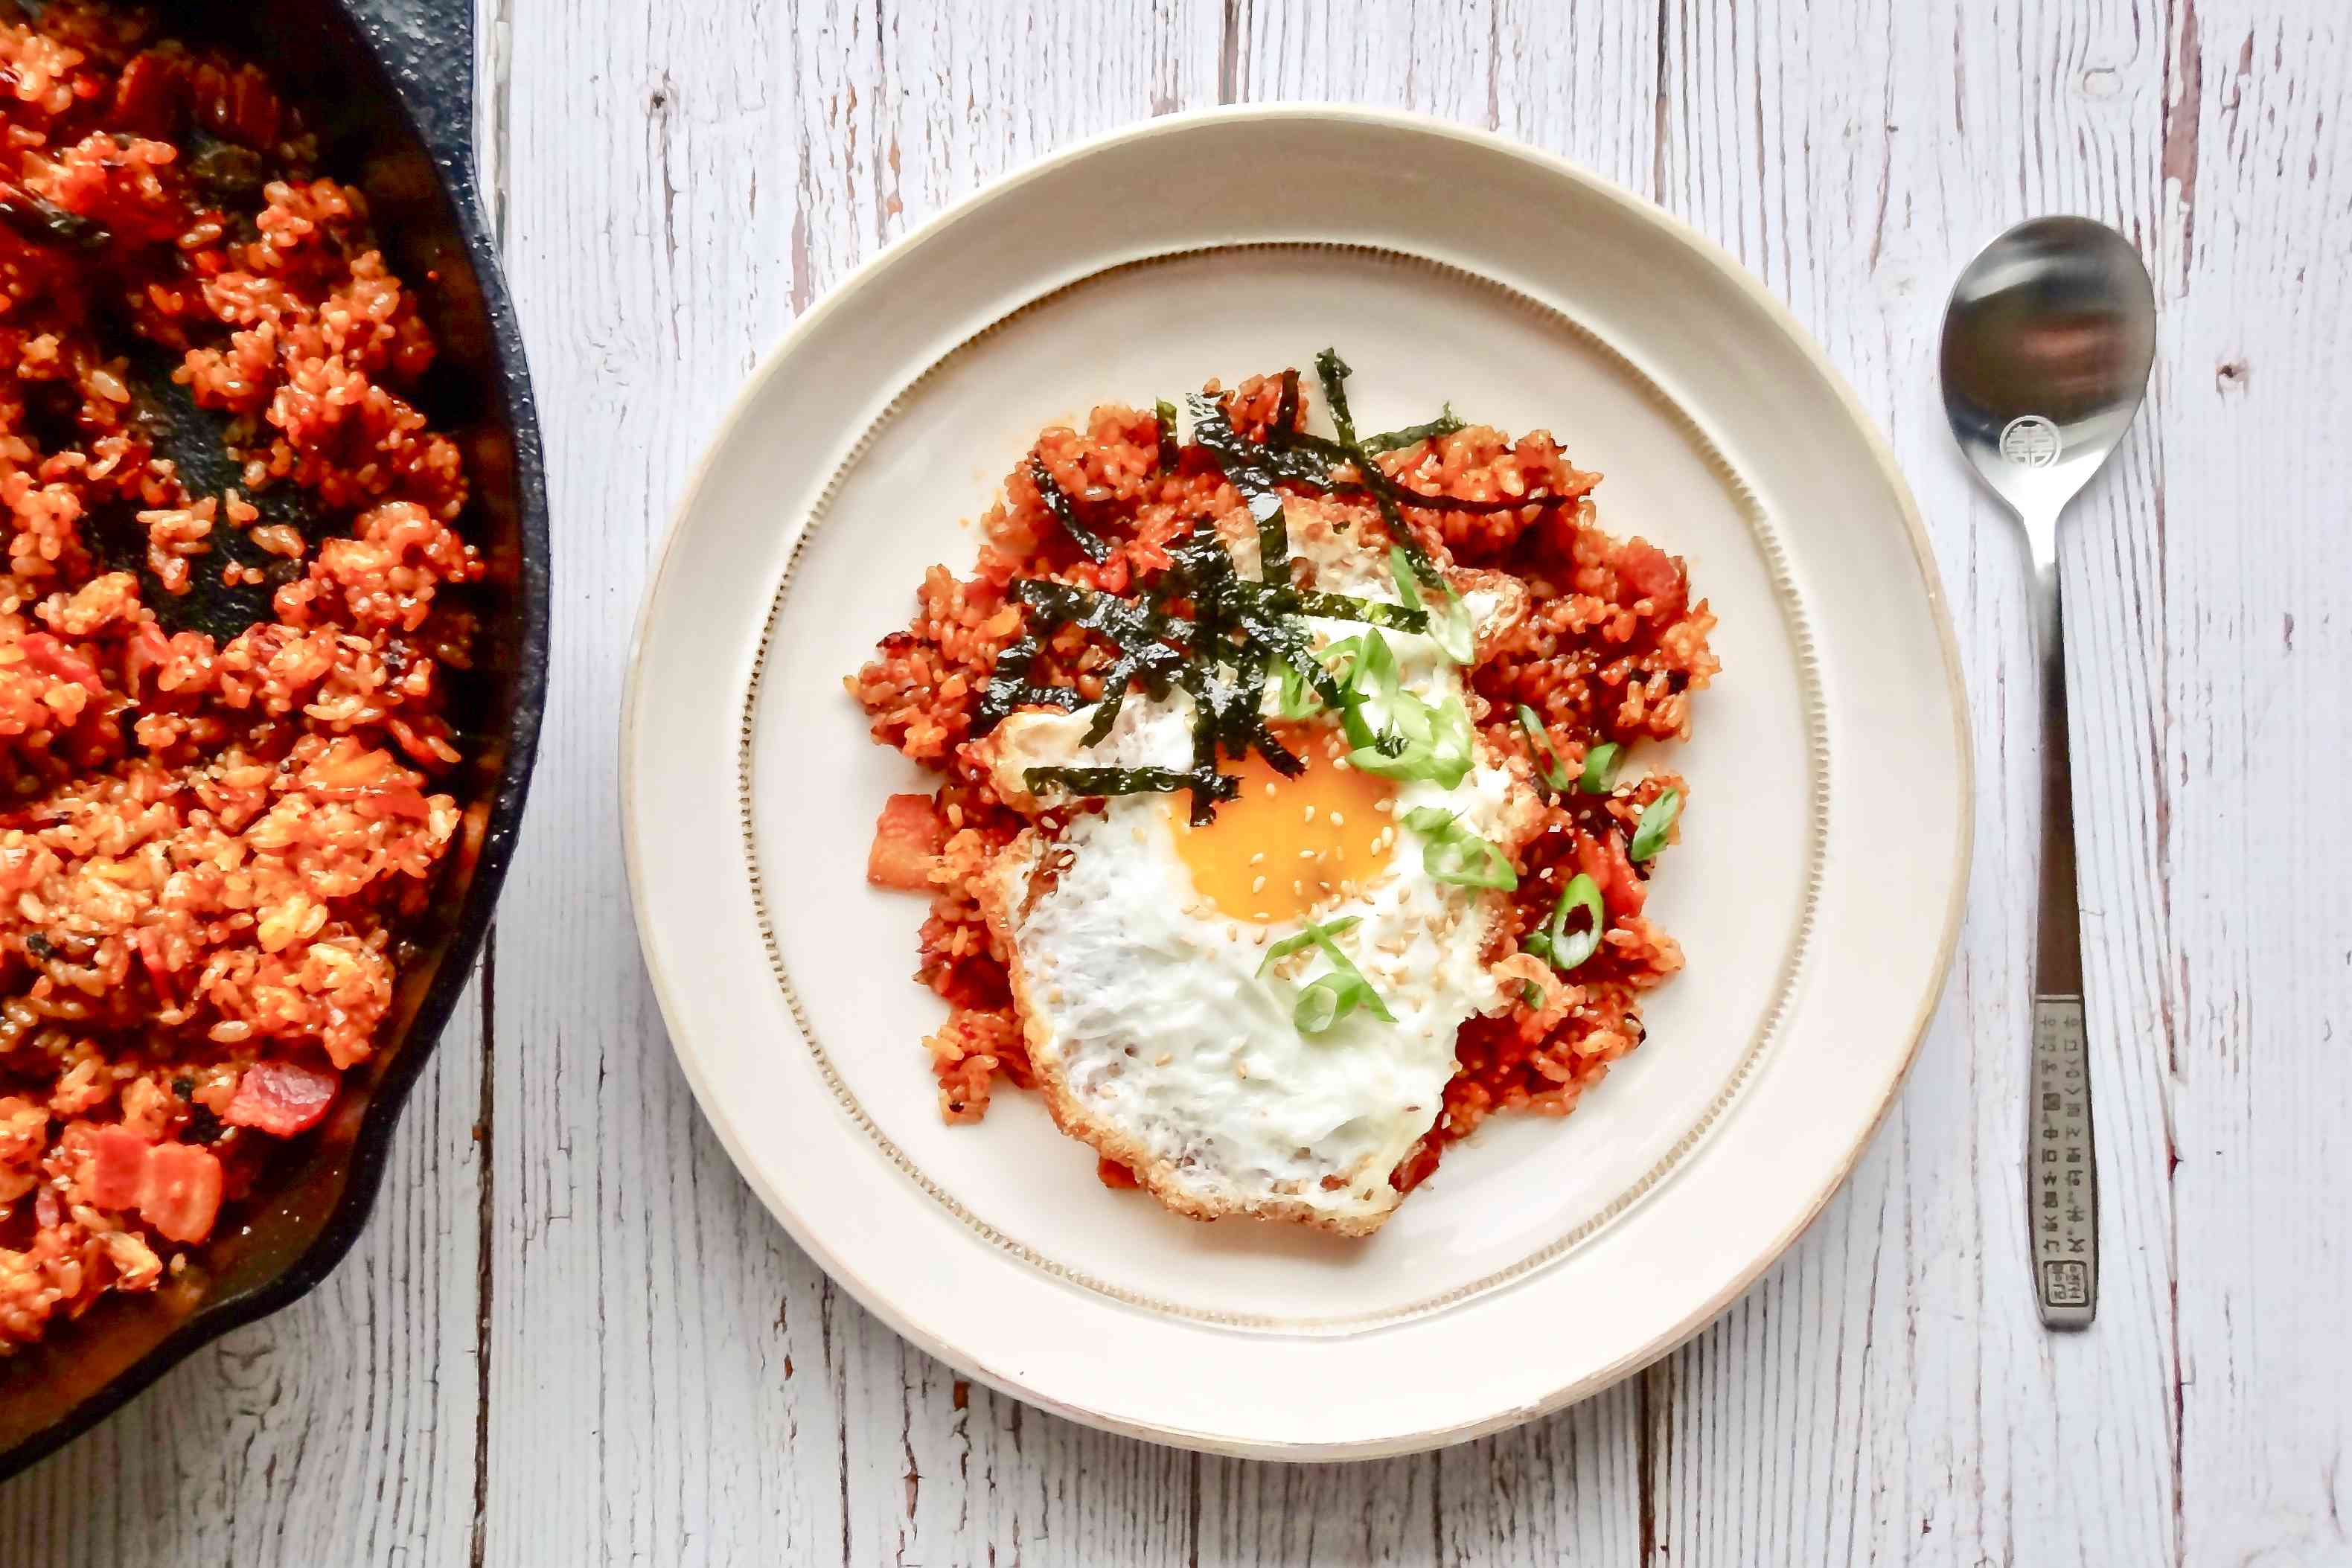 Kimchi fried rice with a fried egg served in a bowl on white wooden background.